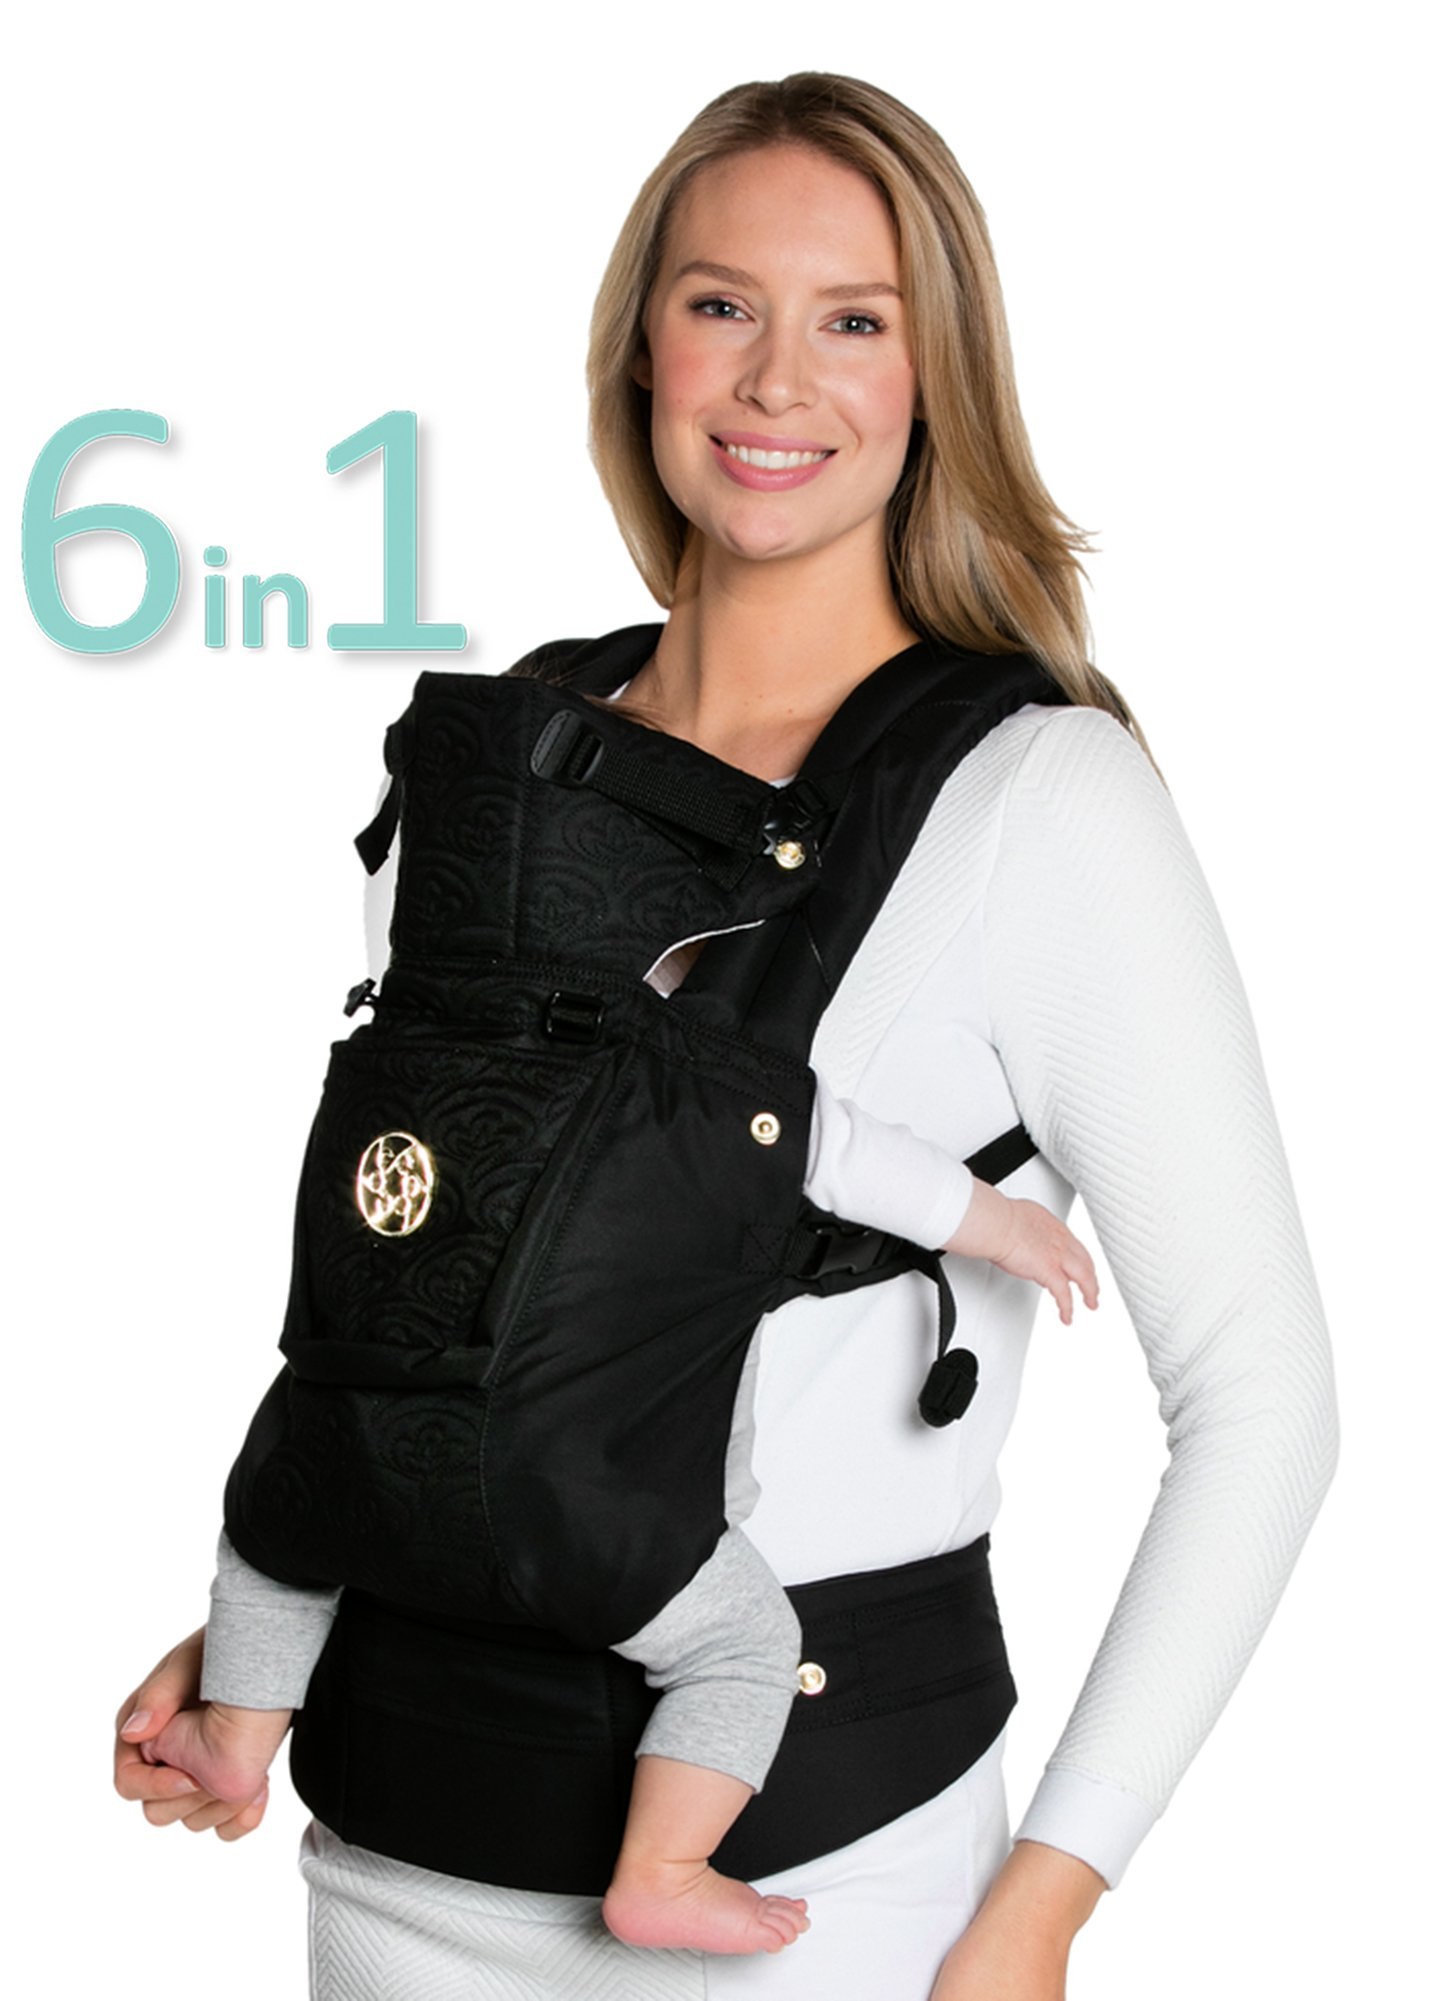 SIX-Position, 360° Ergonomic Baby & Child Carrier by LILLEbaby – The COMPLETE Embossed Luxe (Noir Black)